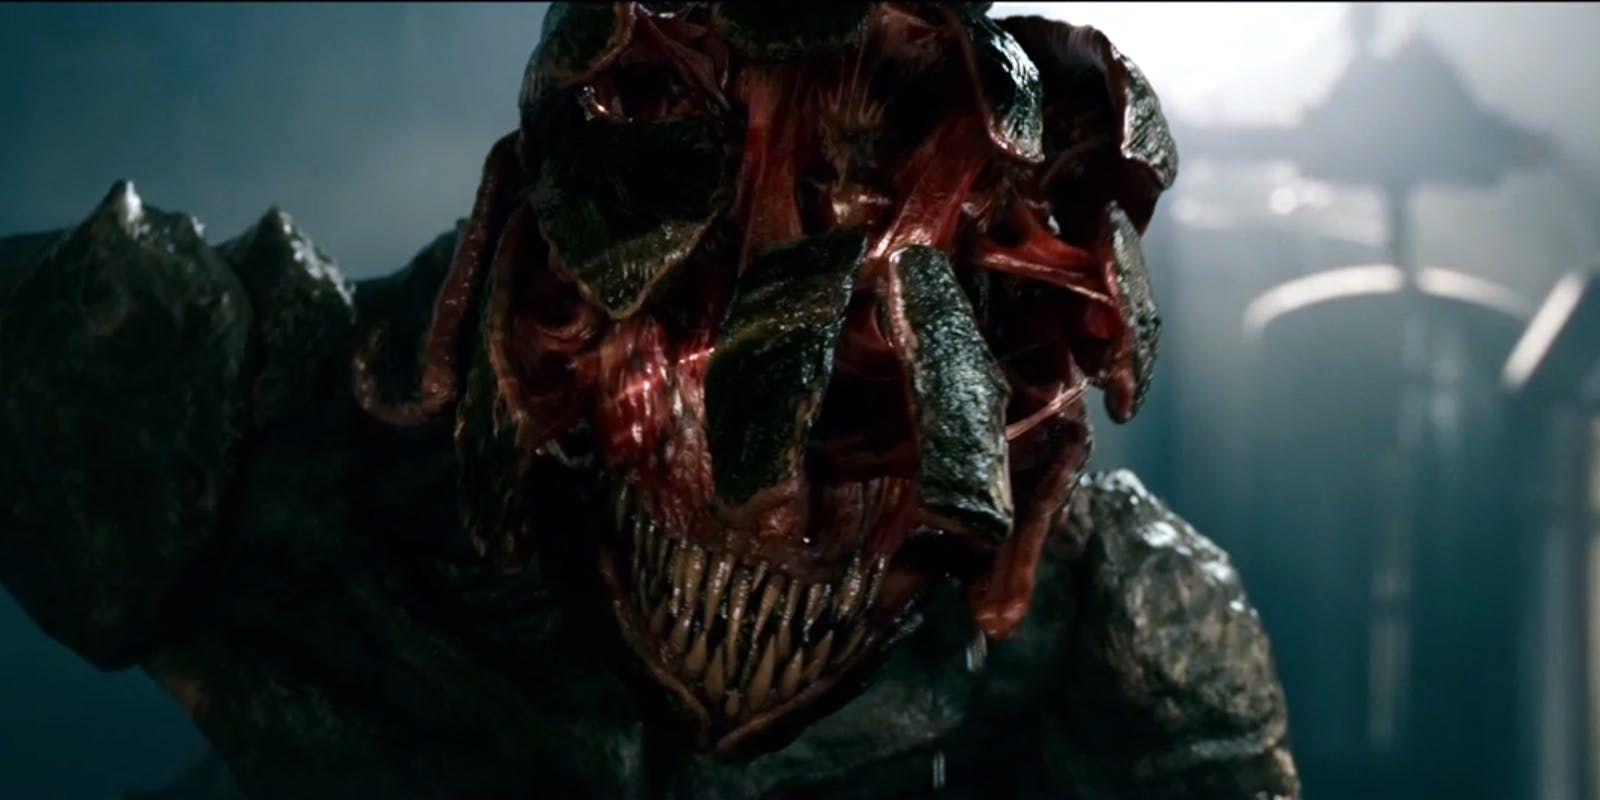 The monster from A Quiet Place.